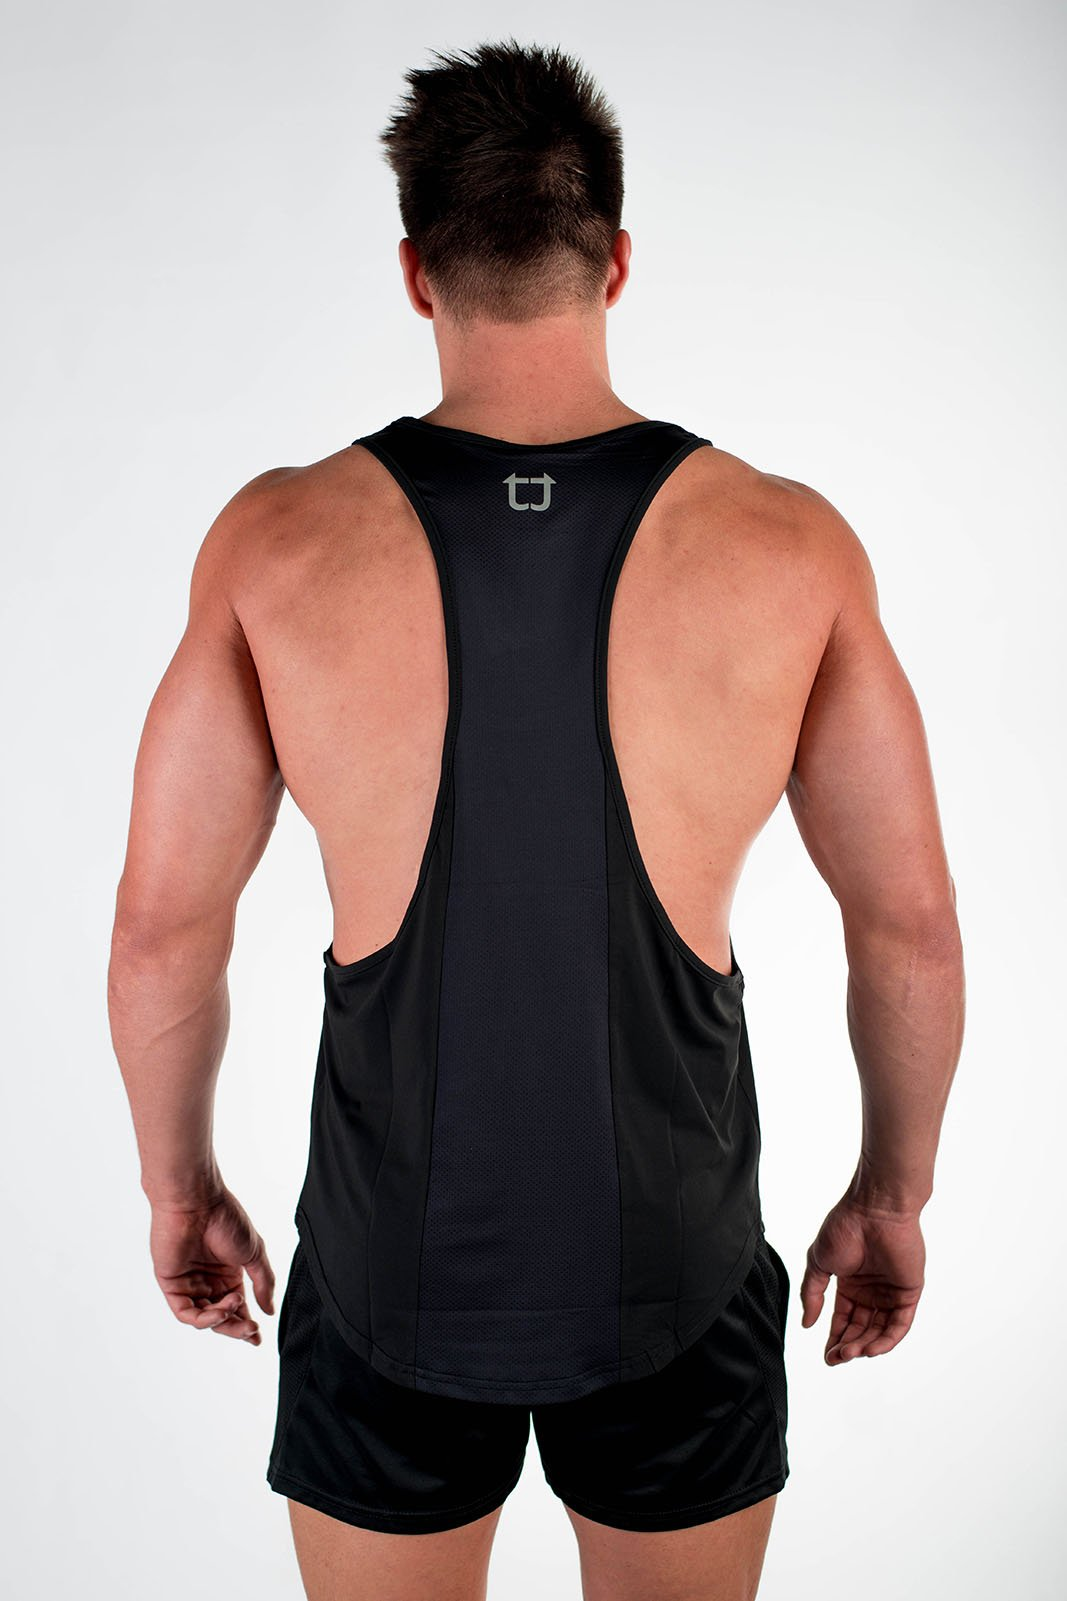 Twotags Purpose Stringer - Black